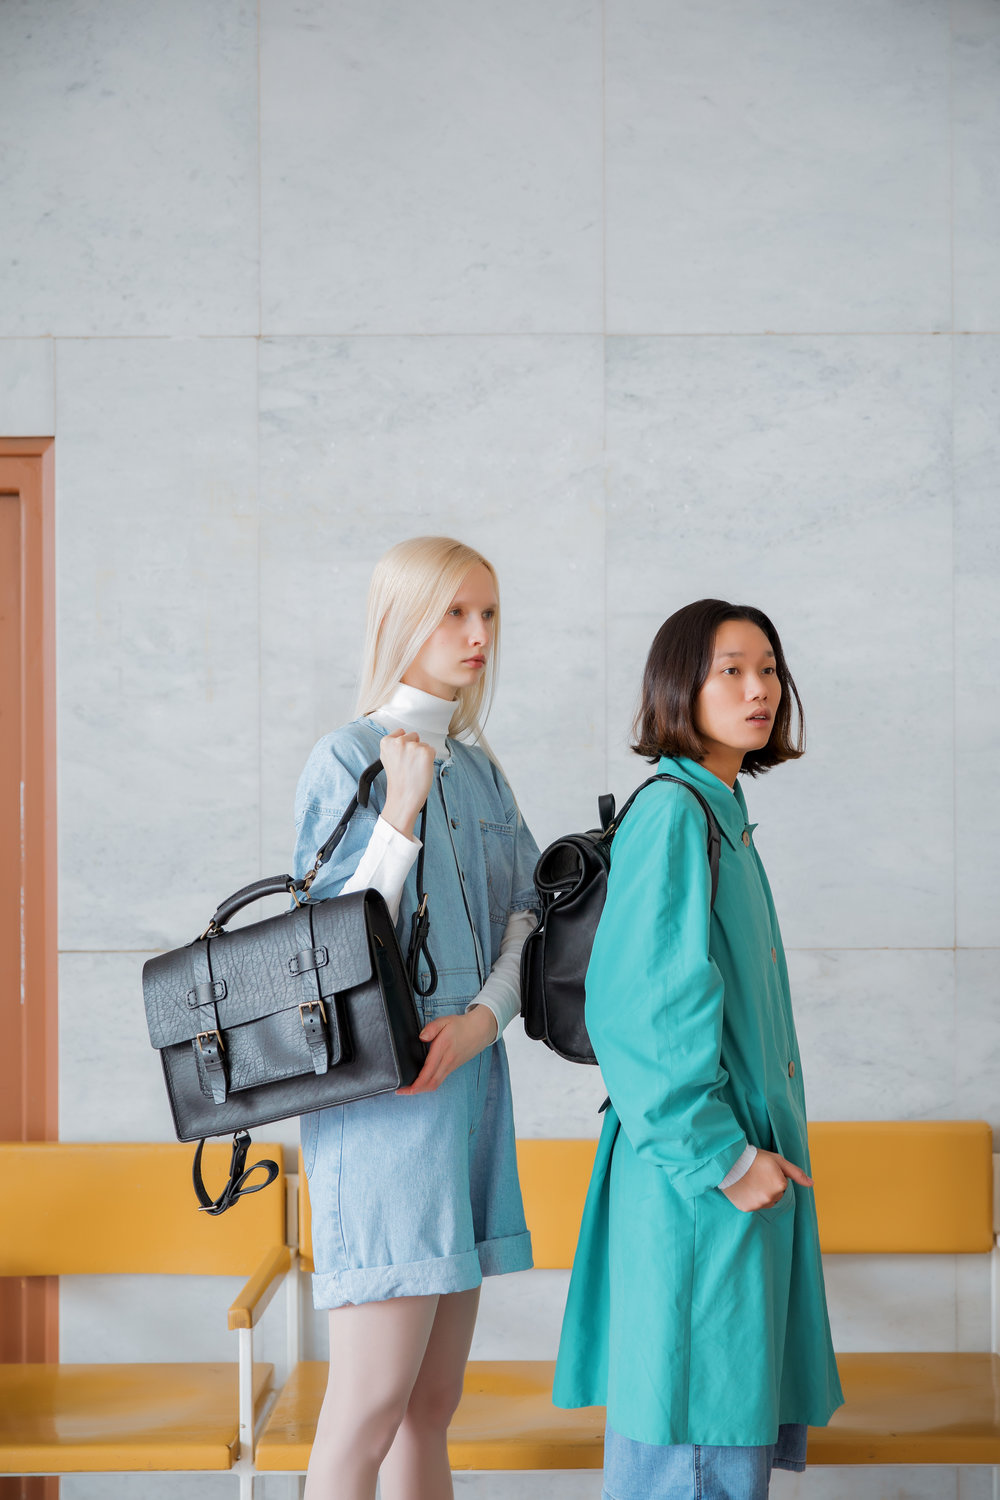 Models with Luxury bags